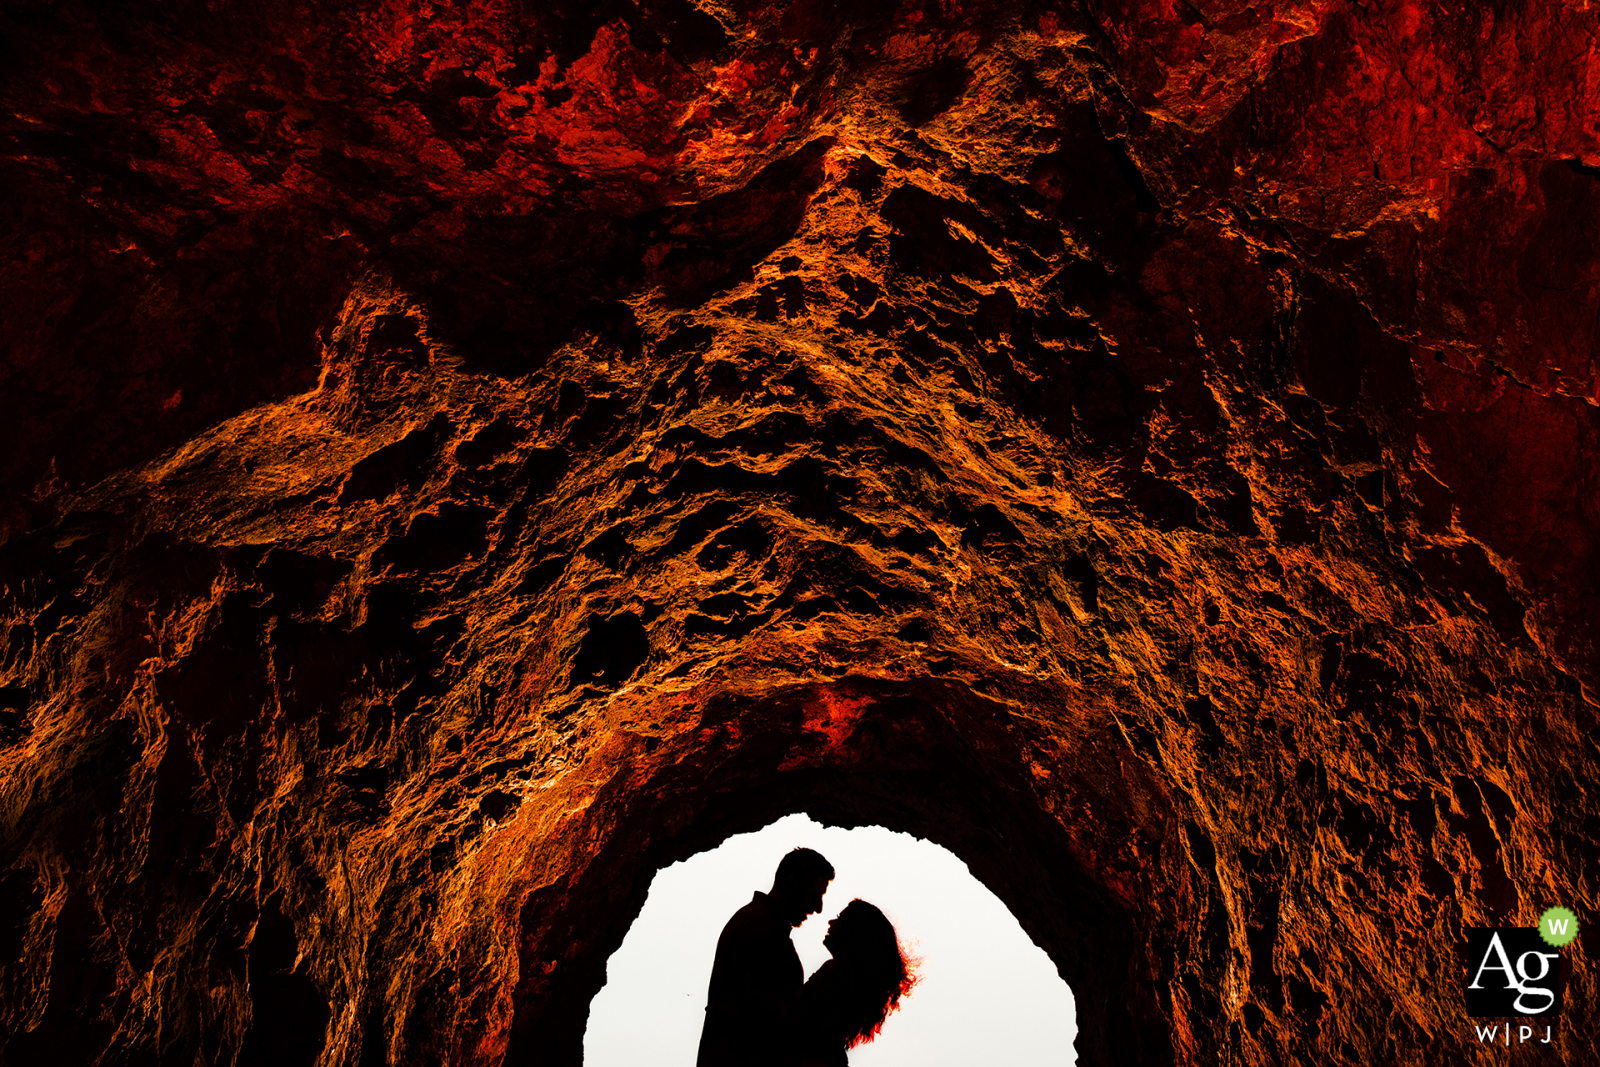 san francisco portrait of the bride and groom in an arched, rock cave in silhouette style